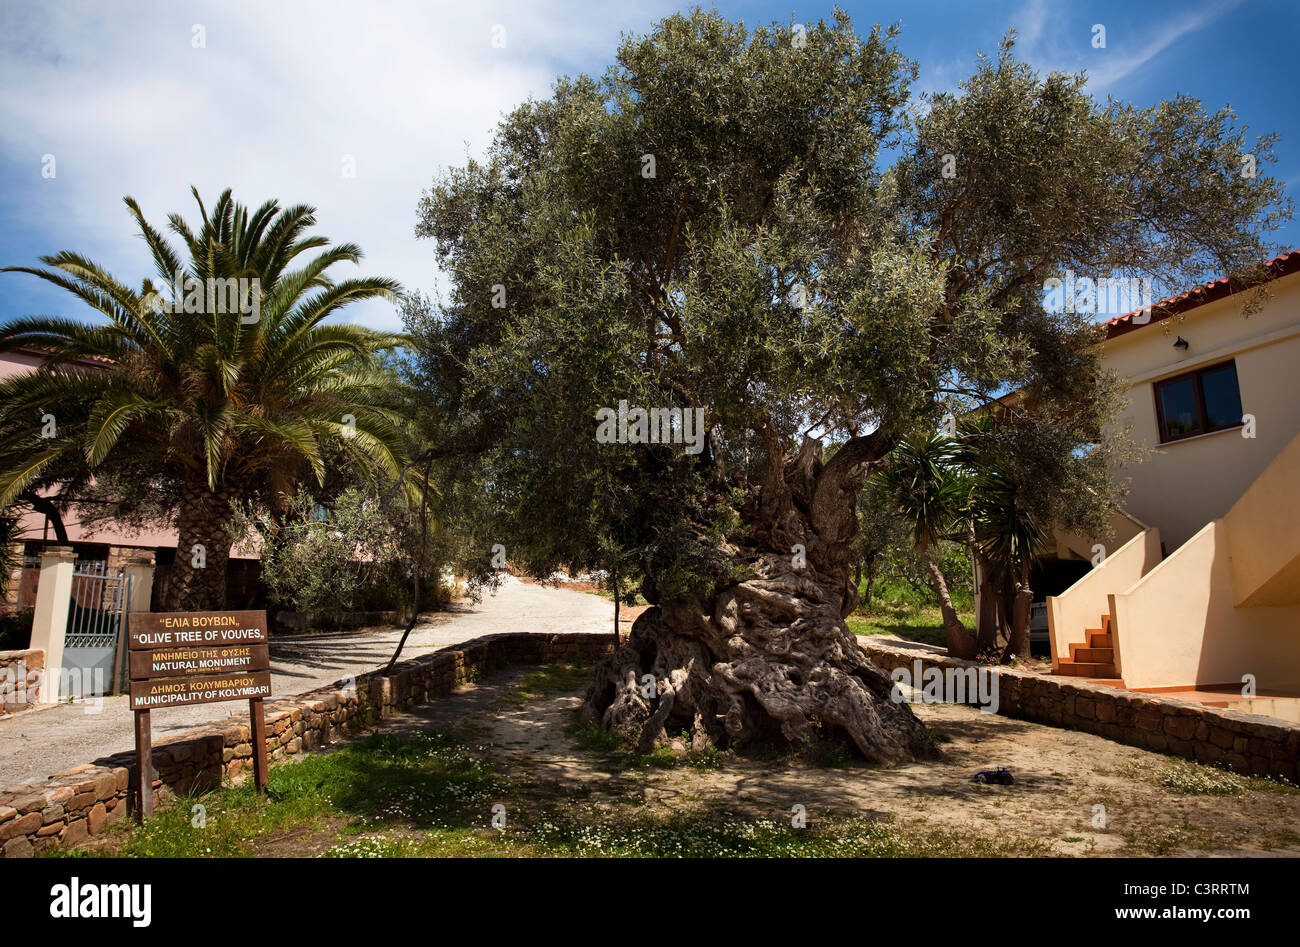 The world's oldest olive tree, in the village of Ana Vouves, thought to be between 2000-3000 years old. Stock Photo